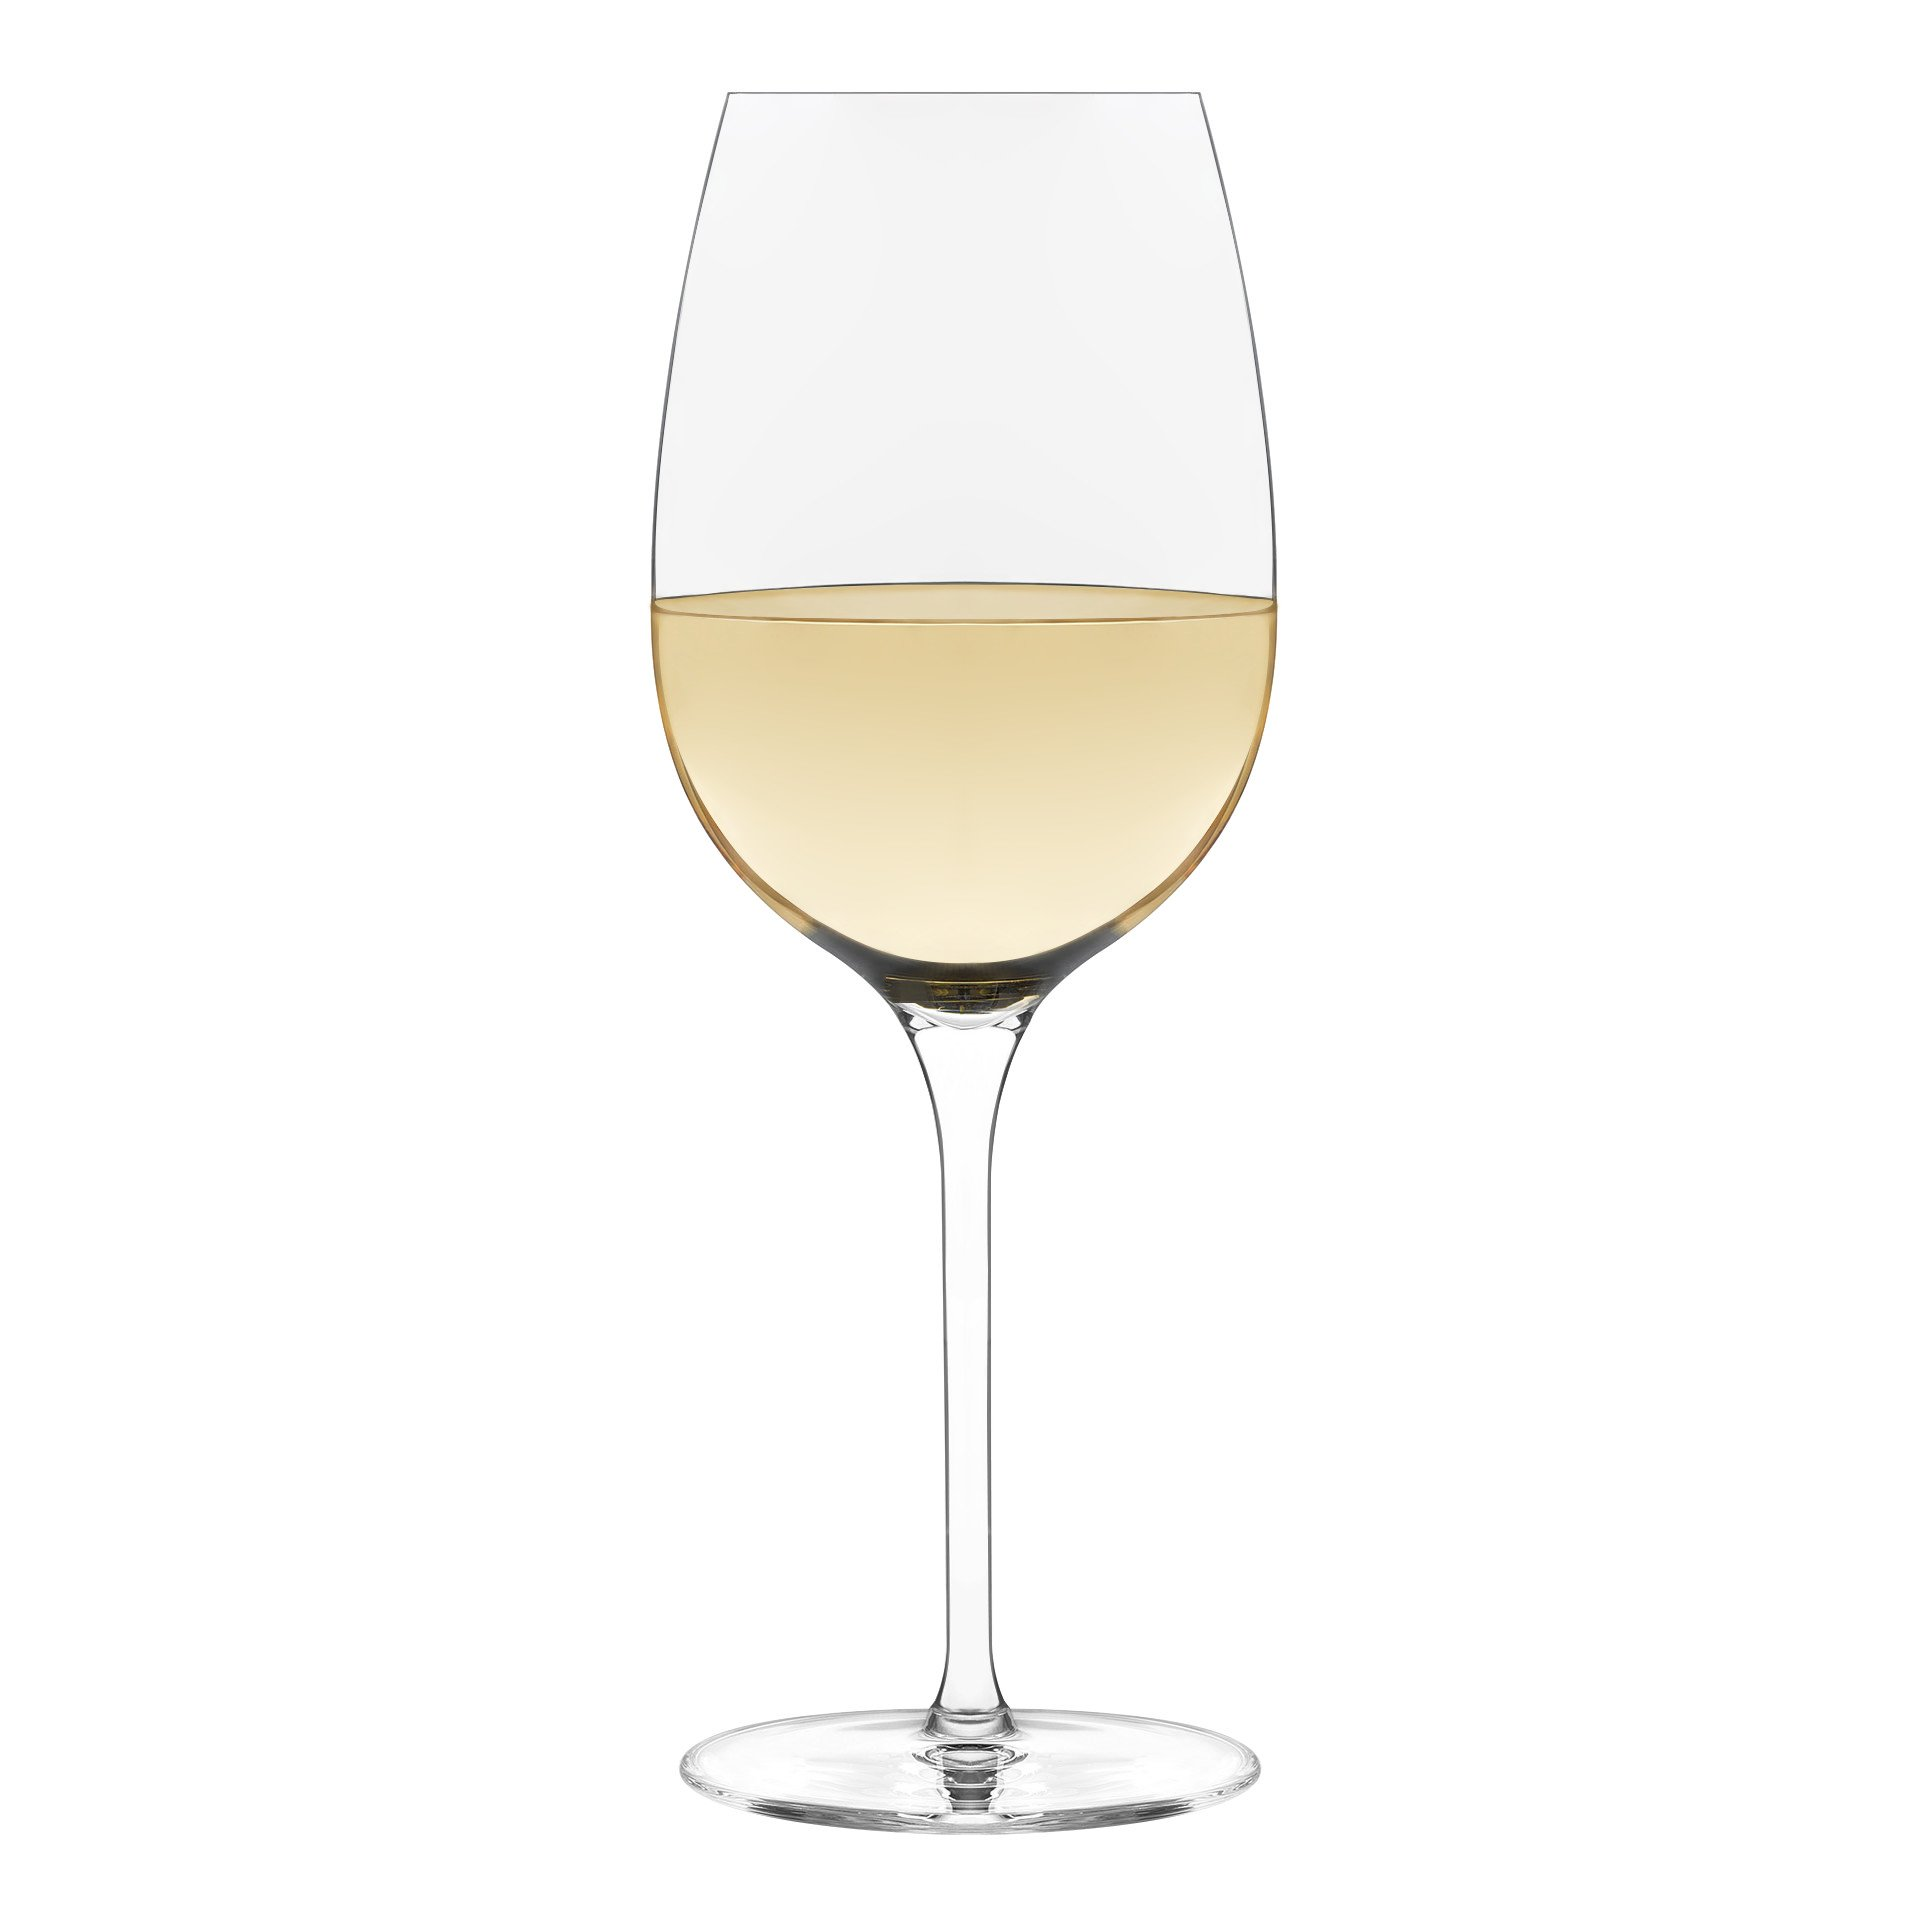 Libbey Signature Kentfield Estate All-Purpose Wine Glass, 16-ounce, Made in USA, Set of 4